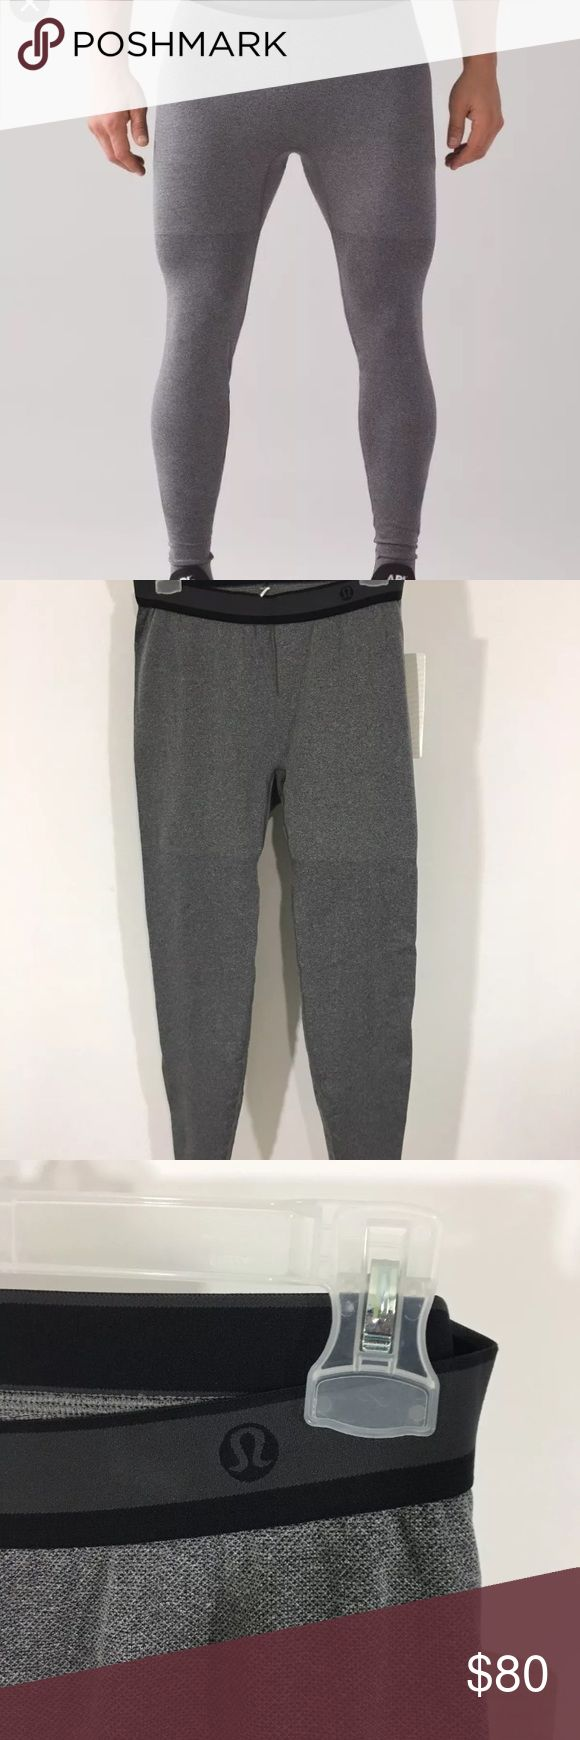 Lululemon Men's Tights Metal Vent Tights Large Lululemon Metal Vent Tights. These Tights are a size large and in perfect condition. perfect gift for someone who lives an active life! lululemon athletica Pants Sweatpants & Joggers